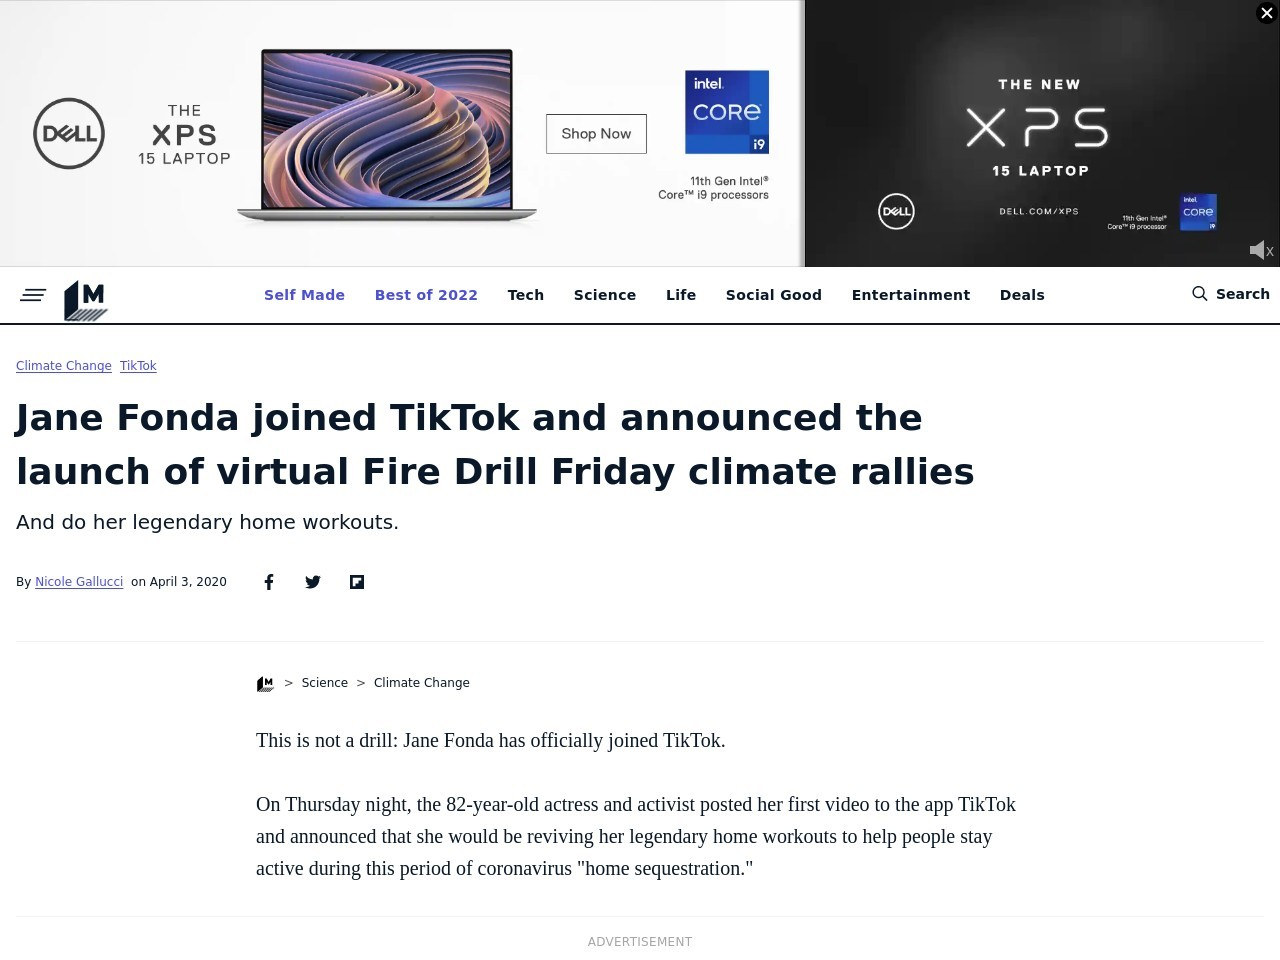 Jane Fonda joined TikTok and announced the launch of virtual Fire Drill Friday climate rallies